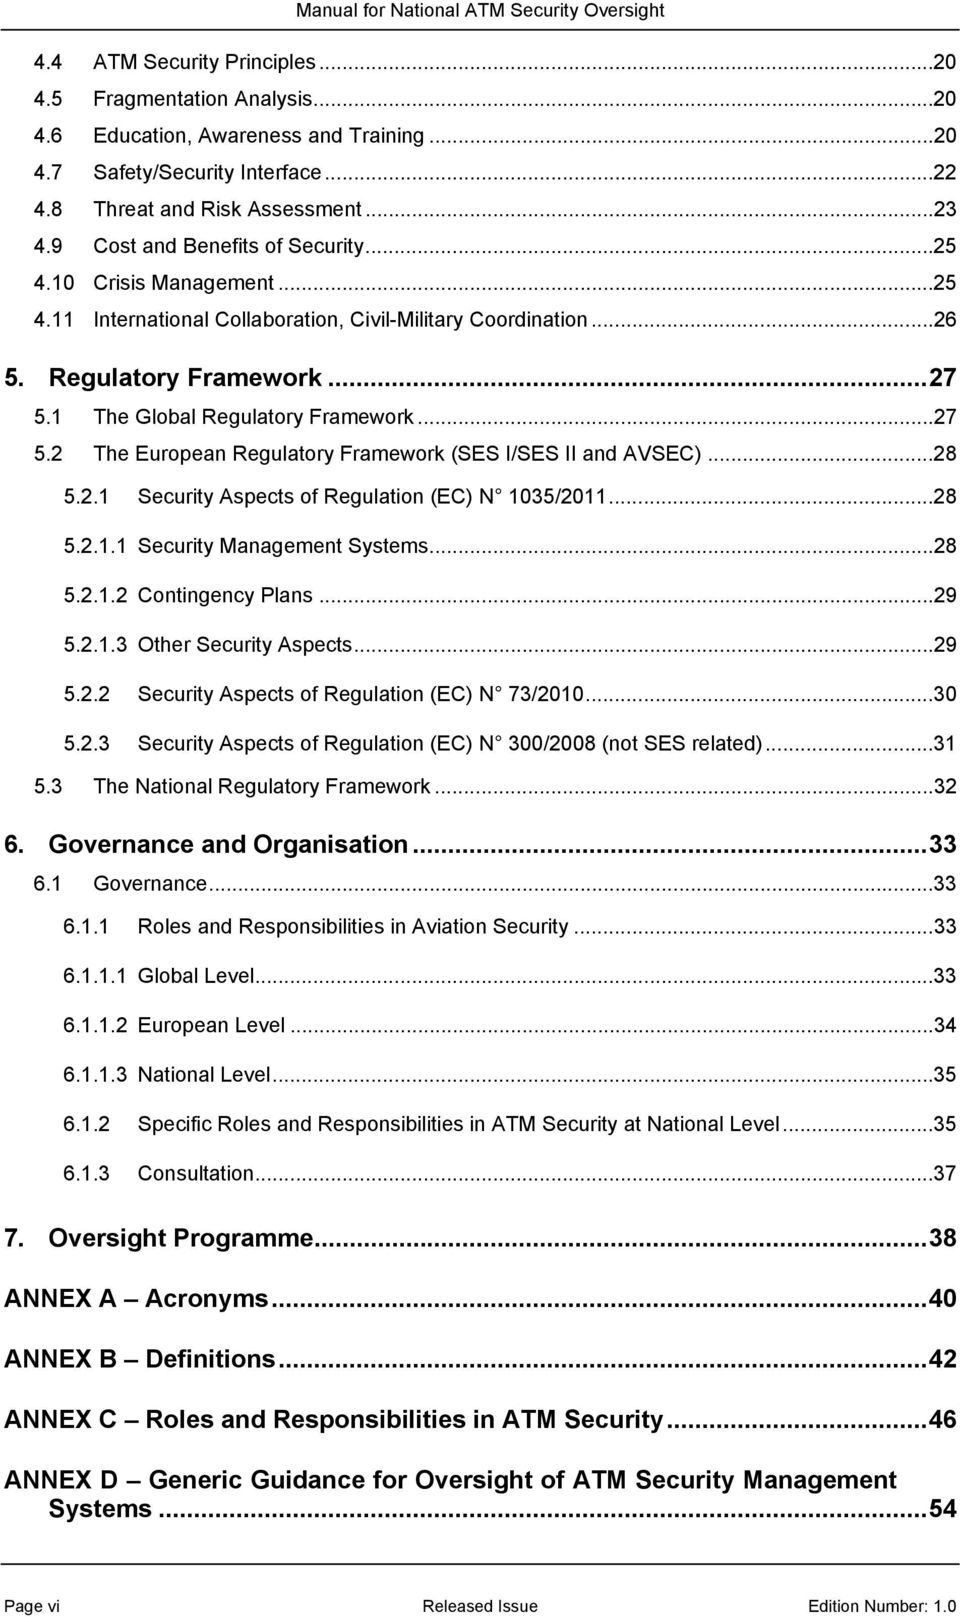 ..27 5.2 The European Regulatory Framework (SES I/SES II and AVSEC)...28 5.2.1 Security Aspects of Regulation (EC) N 1035/2011...28 5.2.1.1 Security Management Systems...28 5.2.1.2 Contingency Plans.